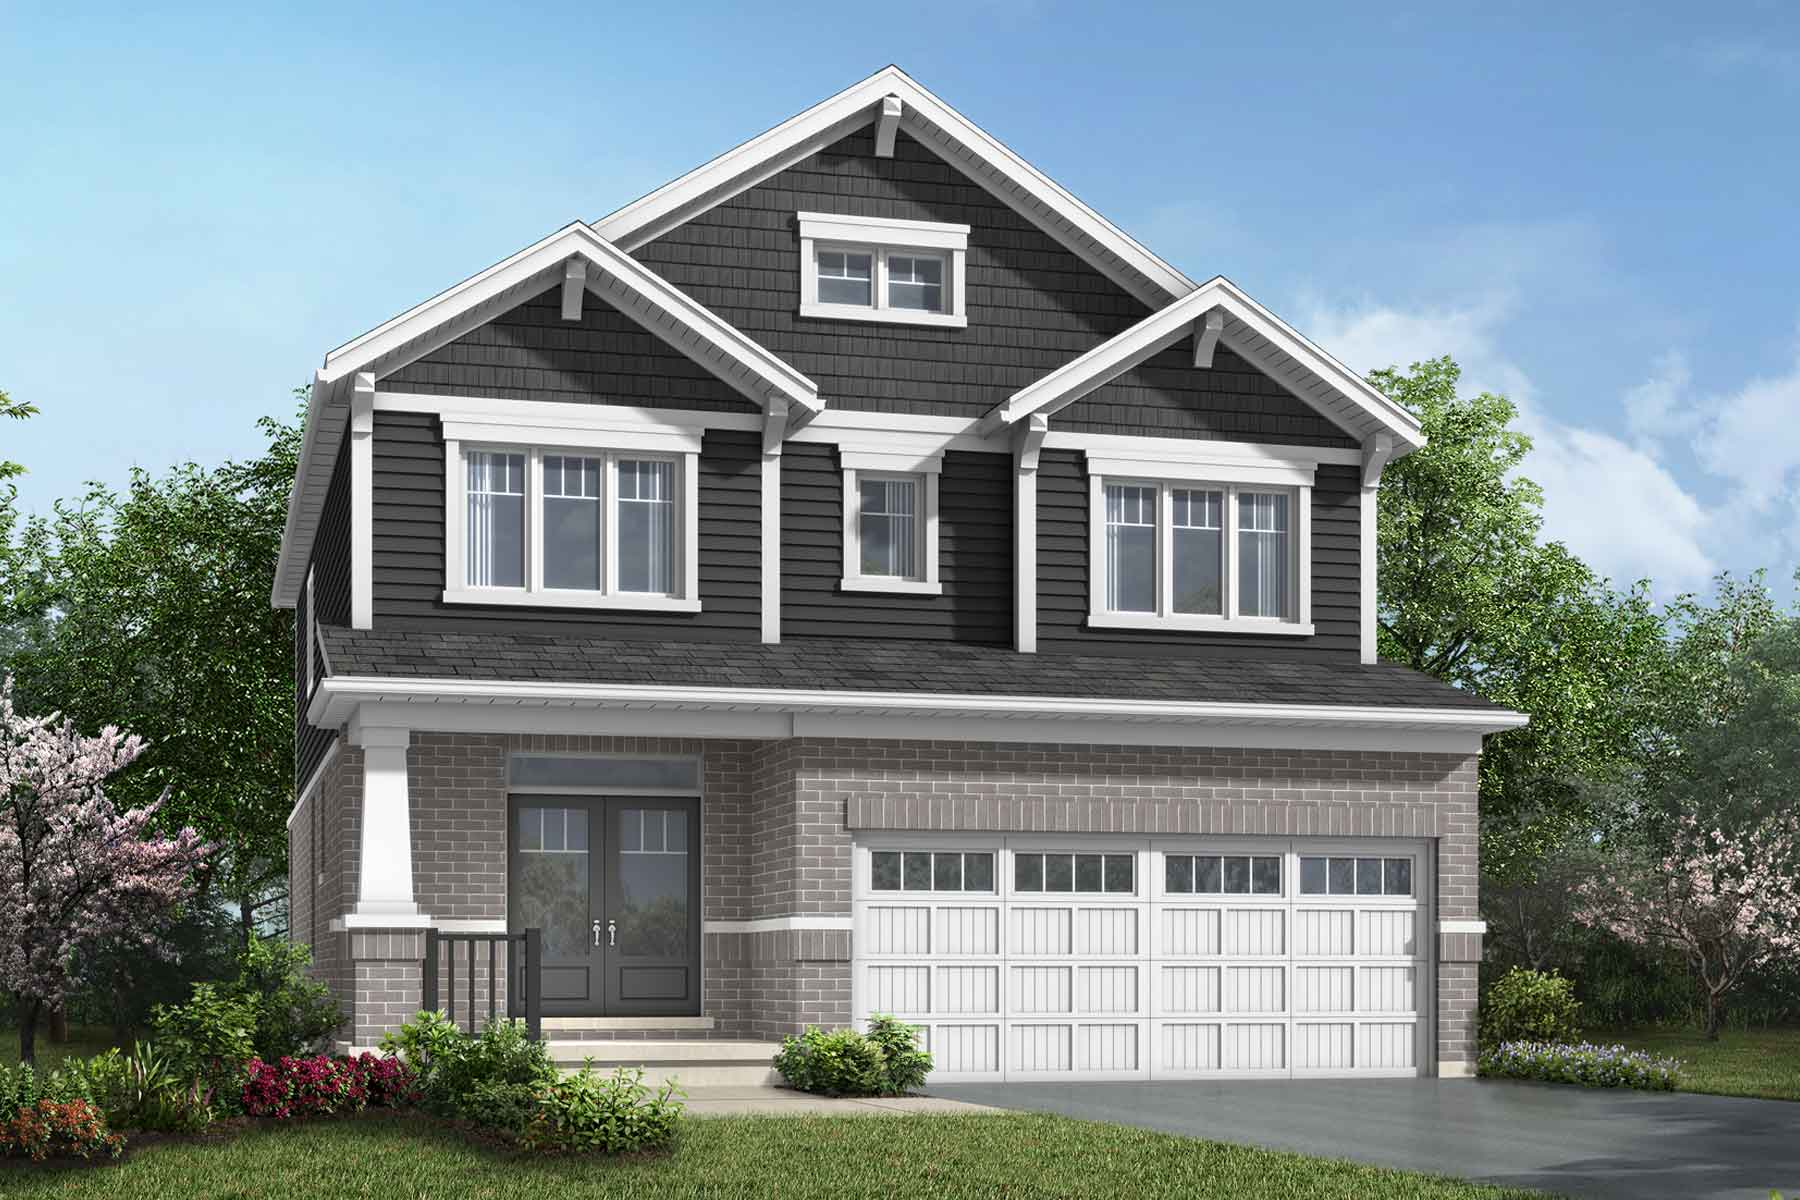 The Brooksdale Plan craftsman_southestates_brooksdale at Wildflower Crossing in Kitchener Ontario by Mattamy Homes